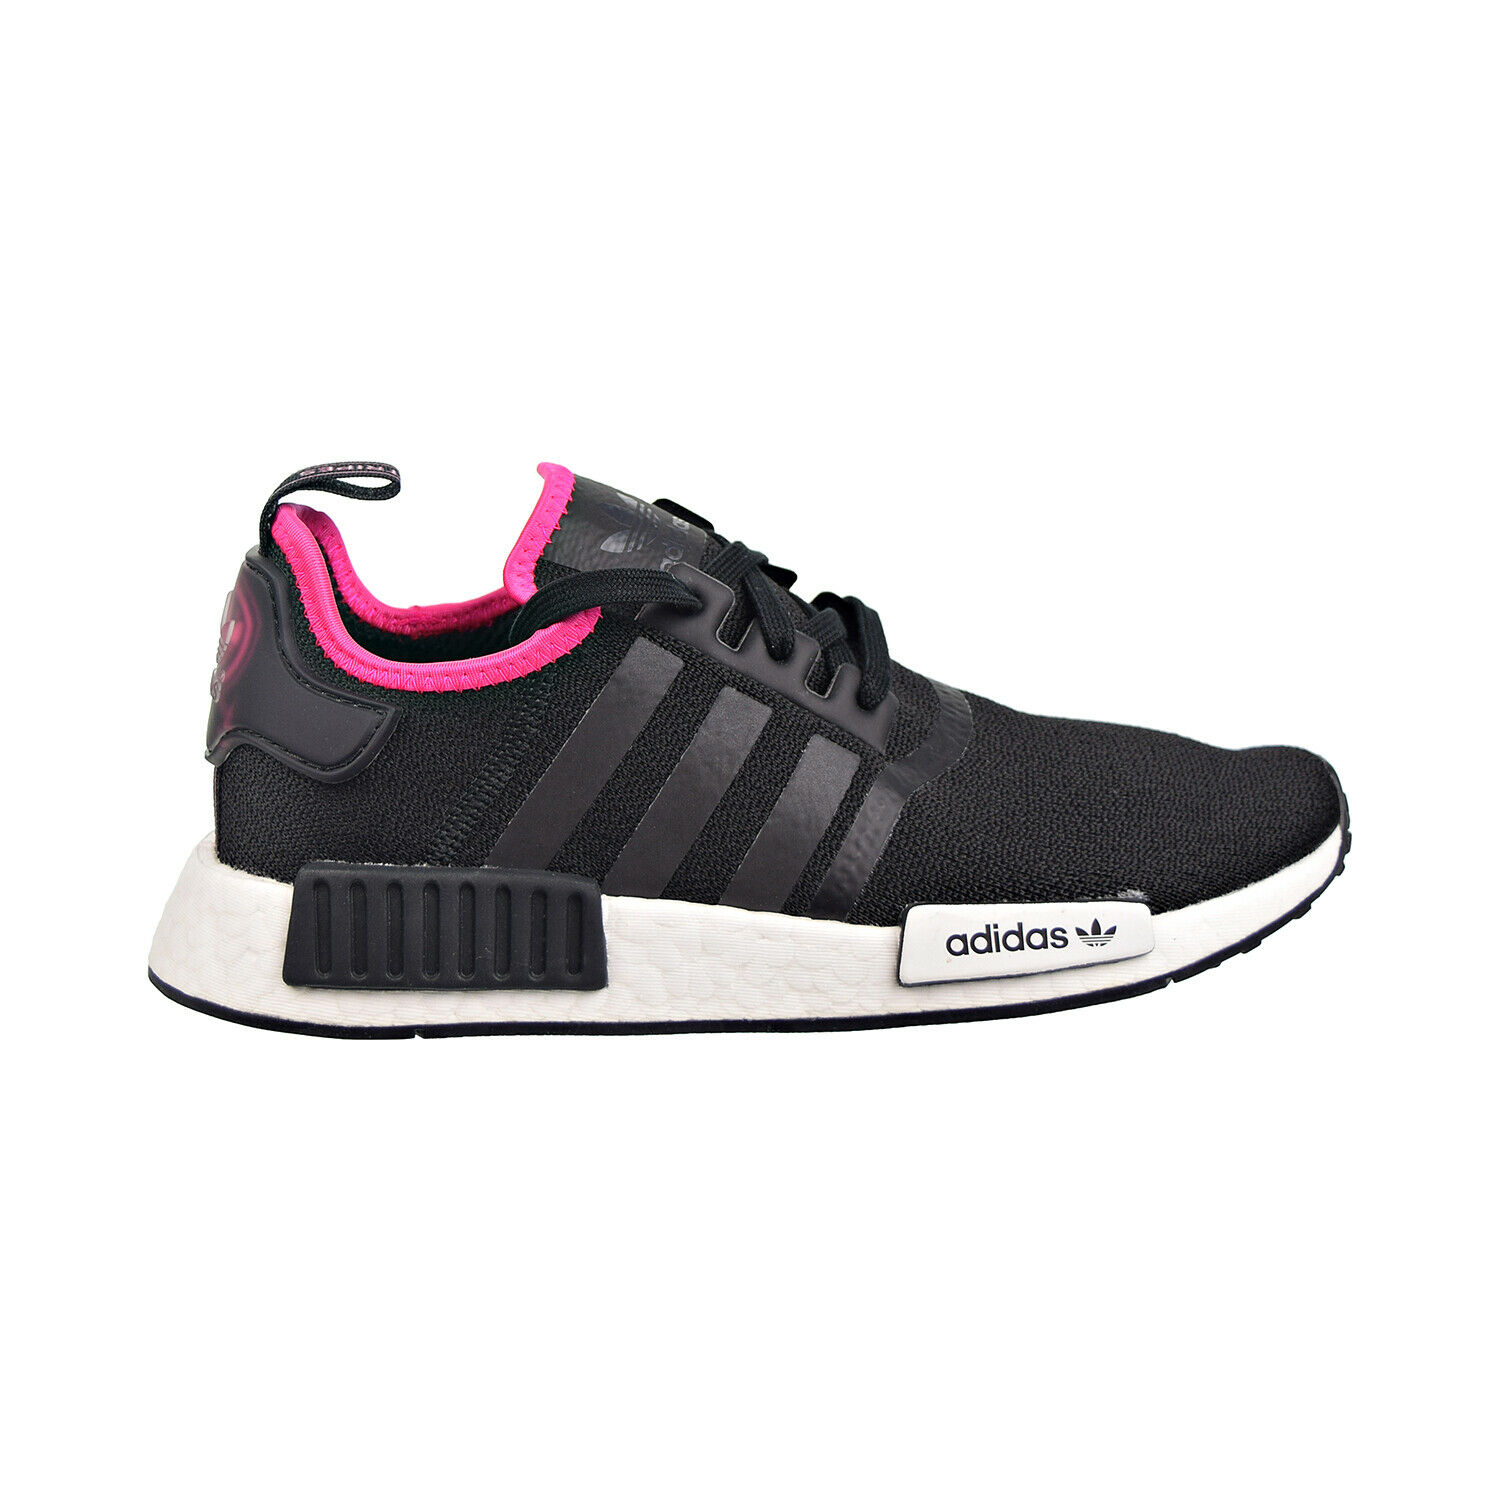 Adidas NMD_R1 Men's shoes Core Black Shock Pink DB3586